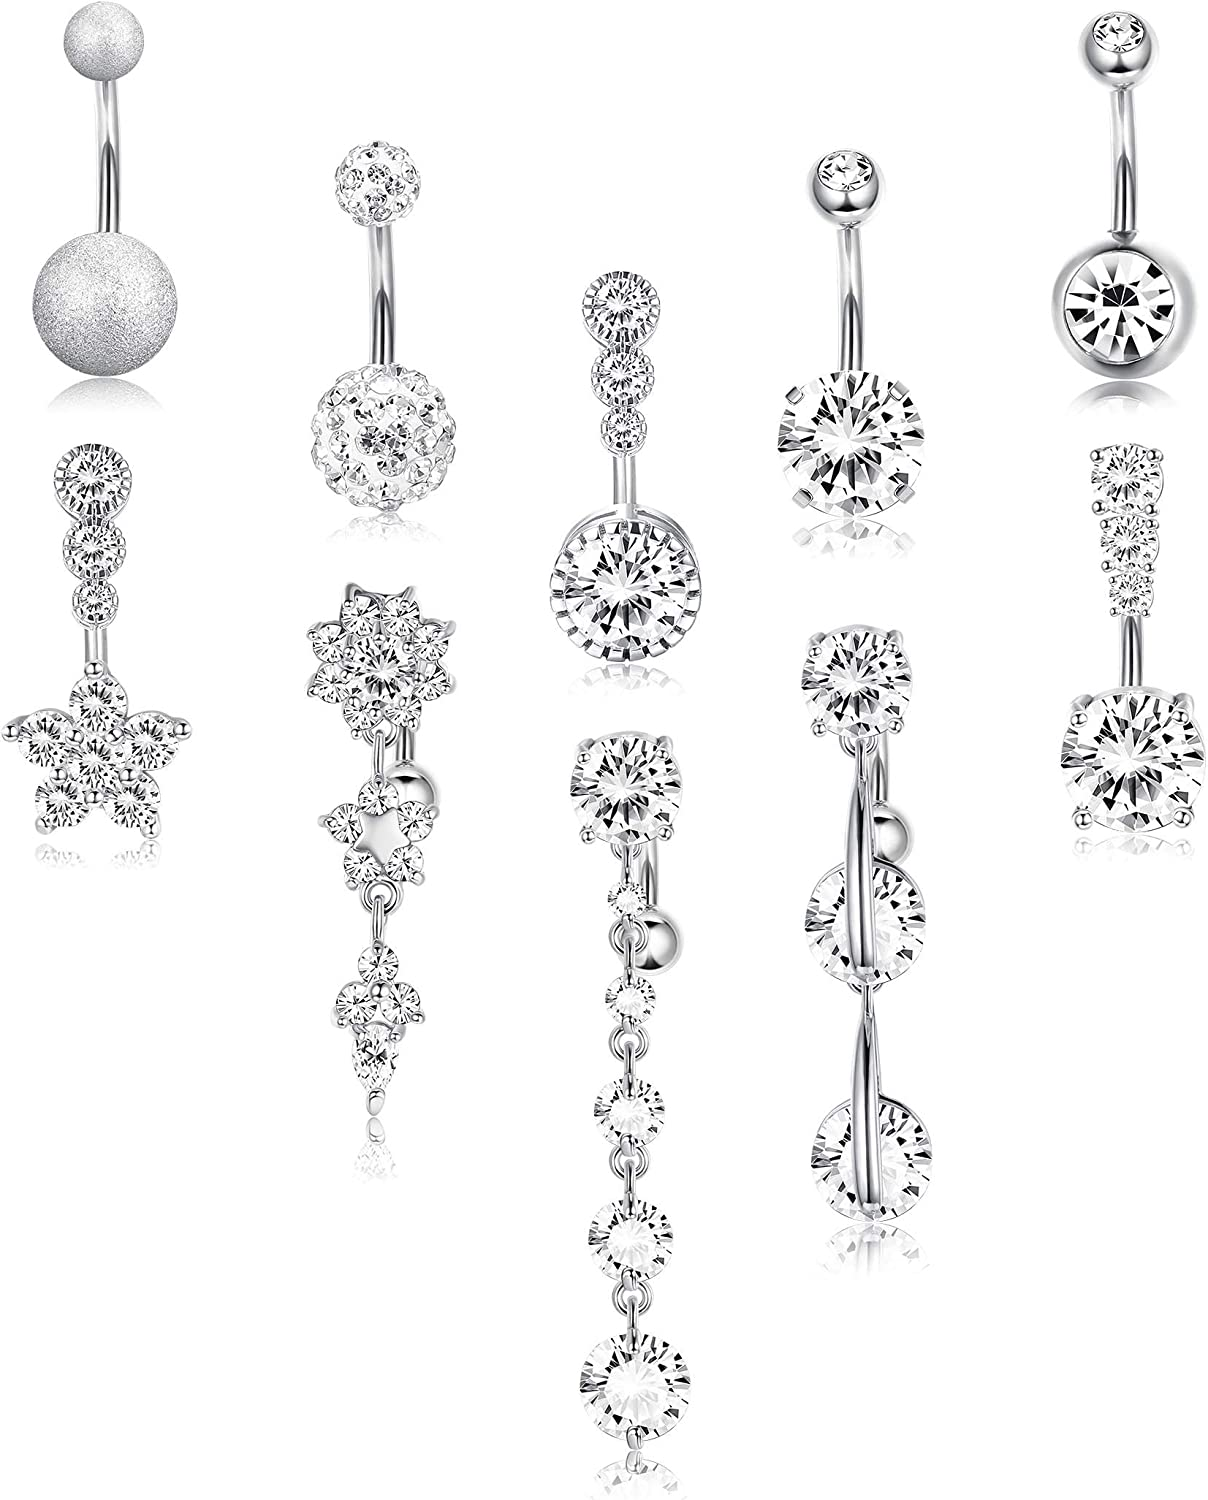 FIBO STEEL 10 Pcs Dangle Belly Surgi Rings Max 73% OFF for store 316L Button Women